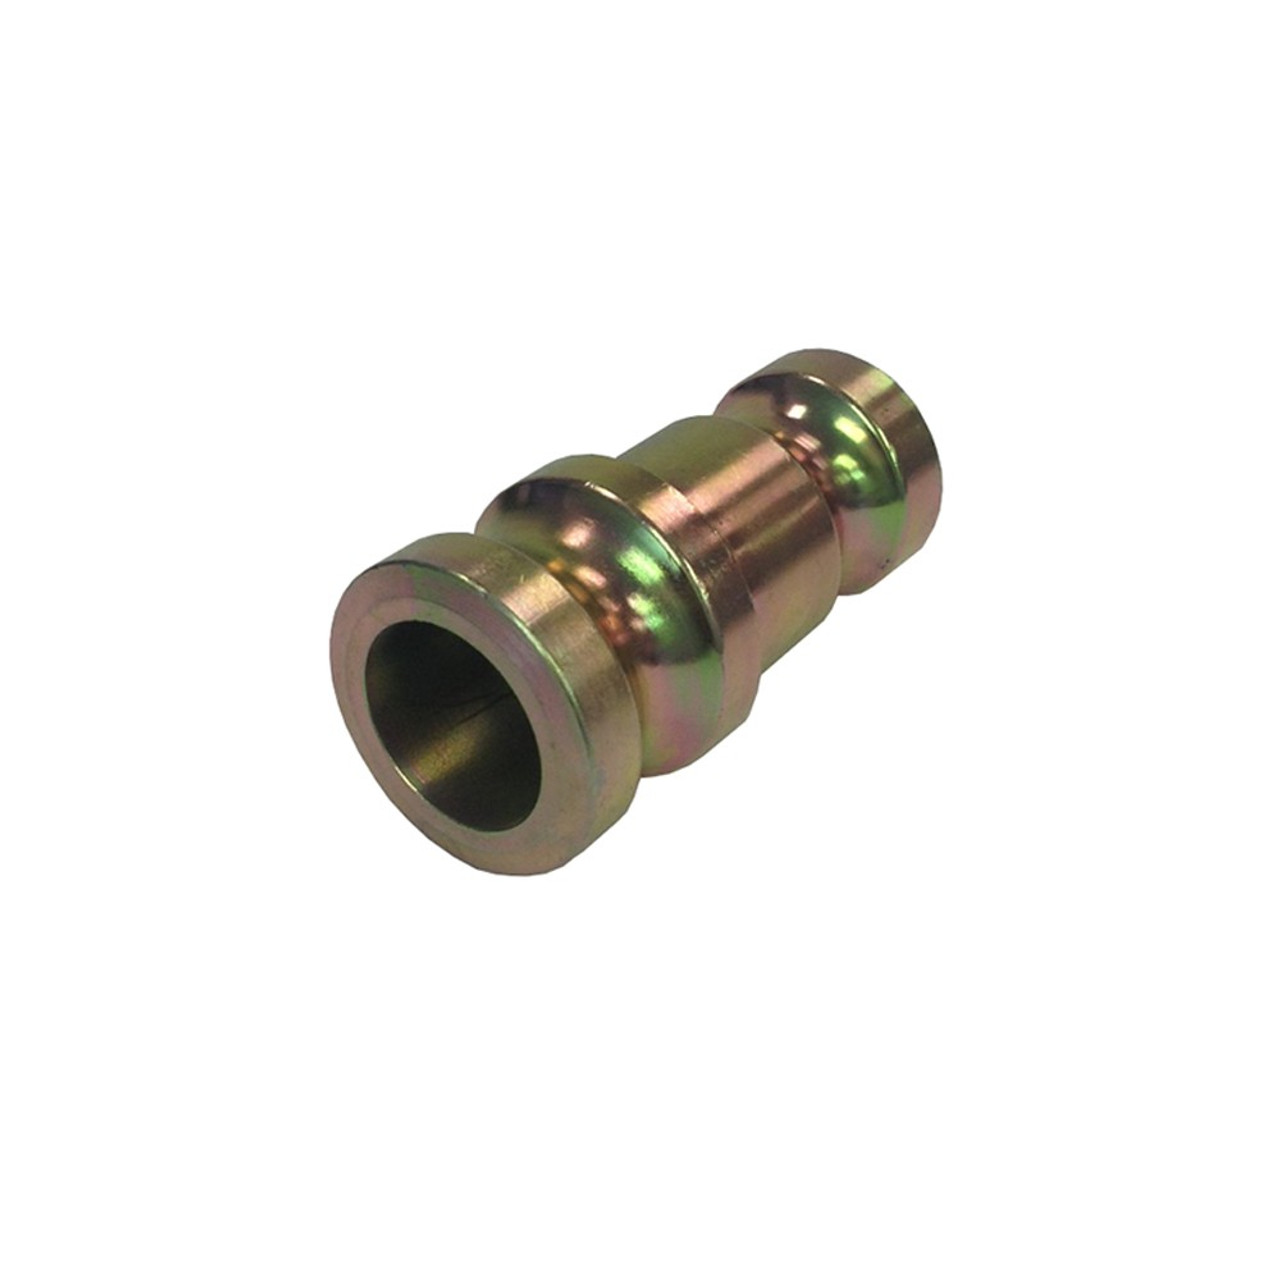 Mortar Coupling Male 25mm To Male 35mm Step Down Adaptor